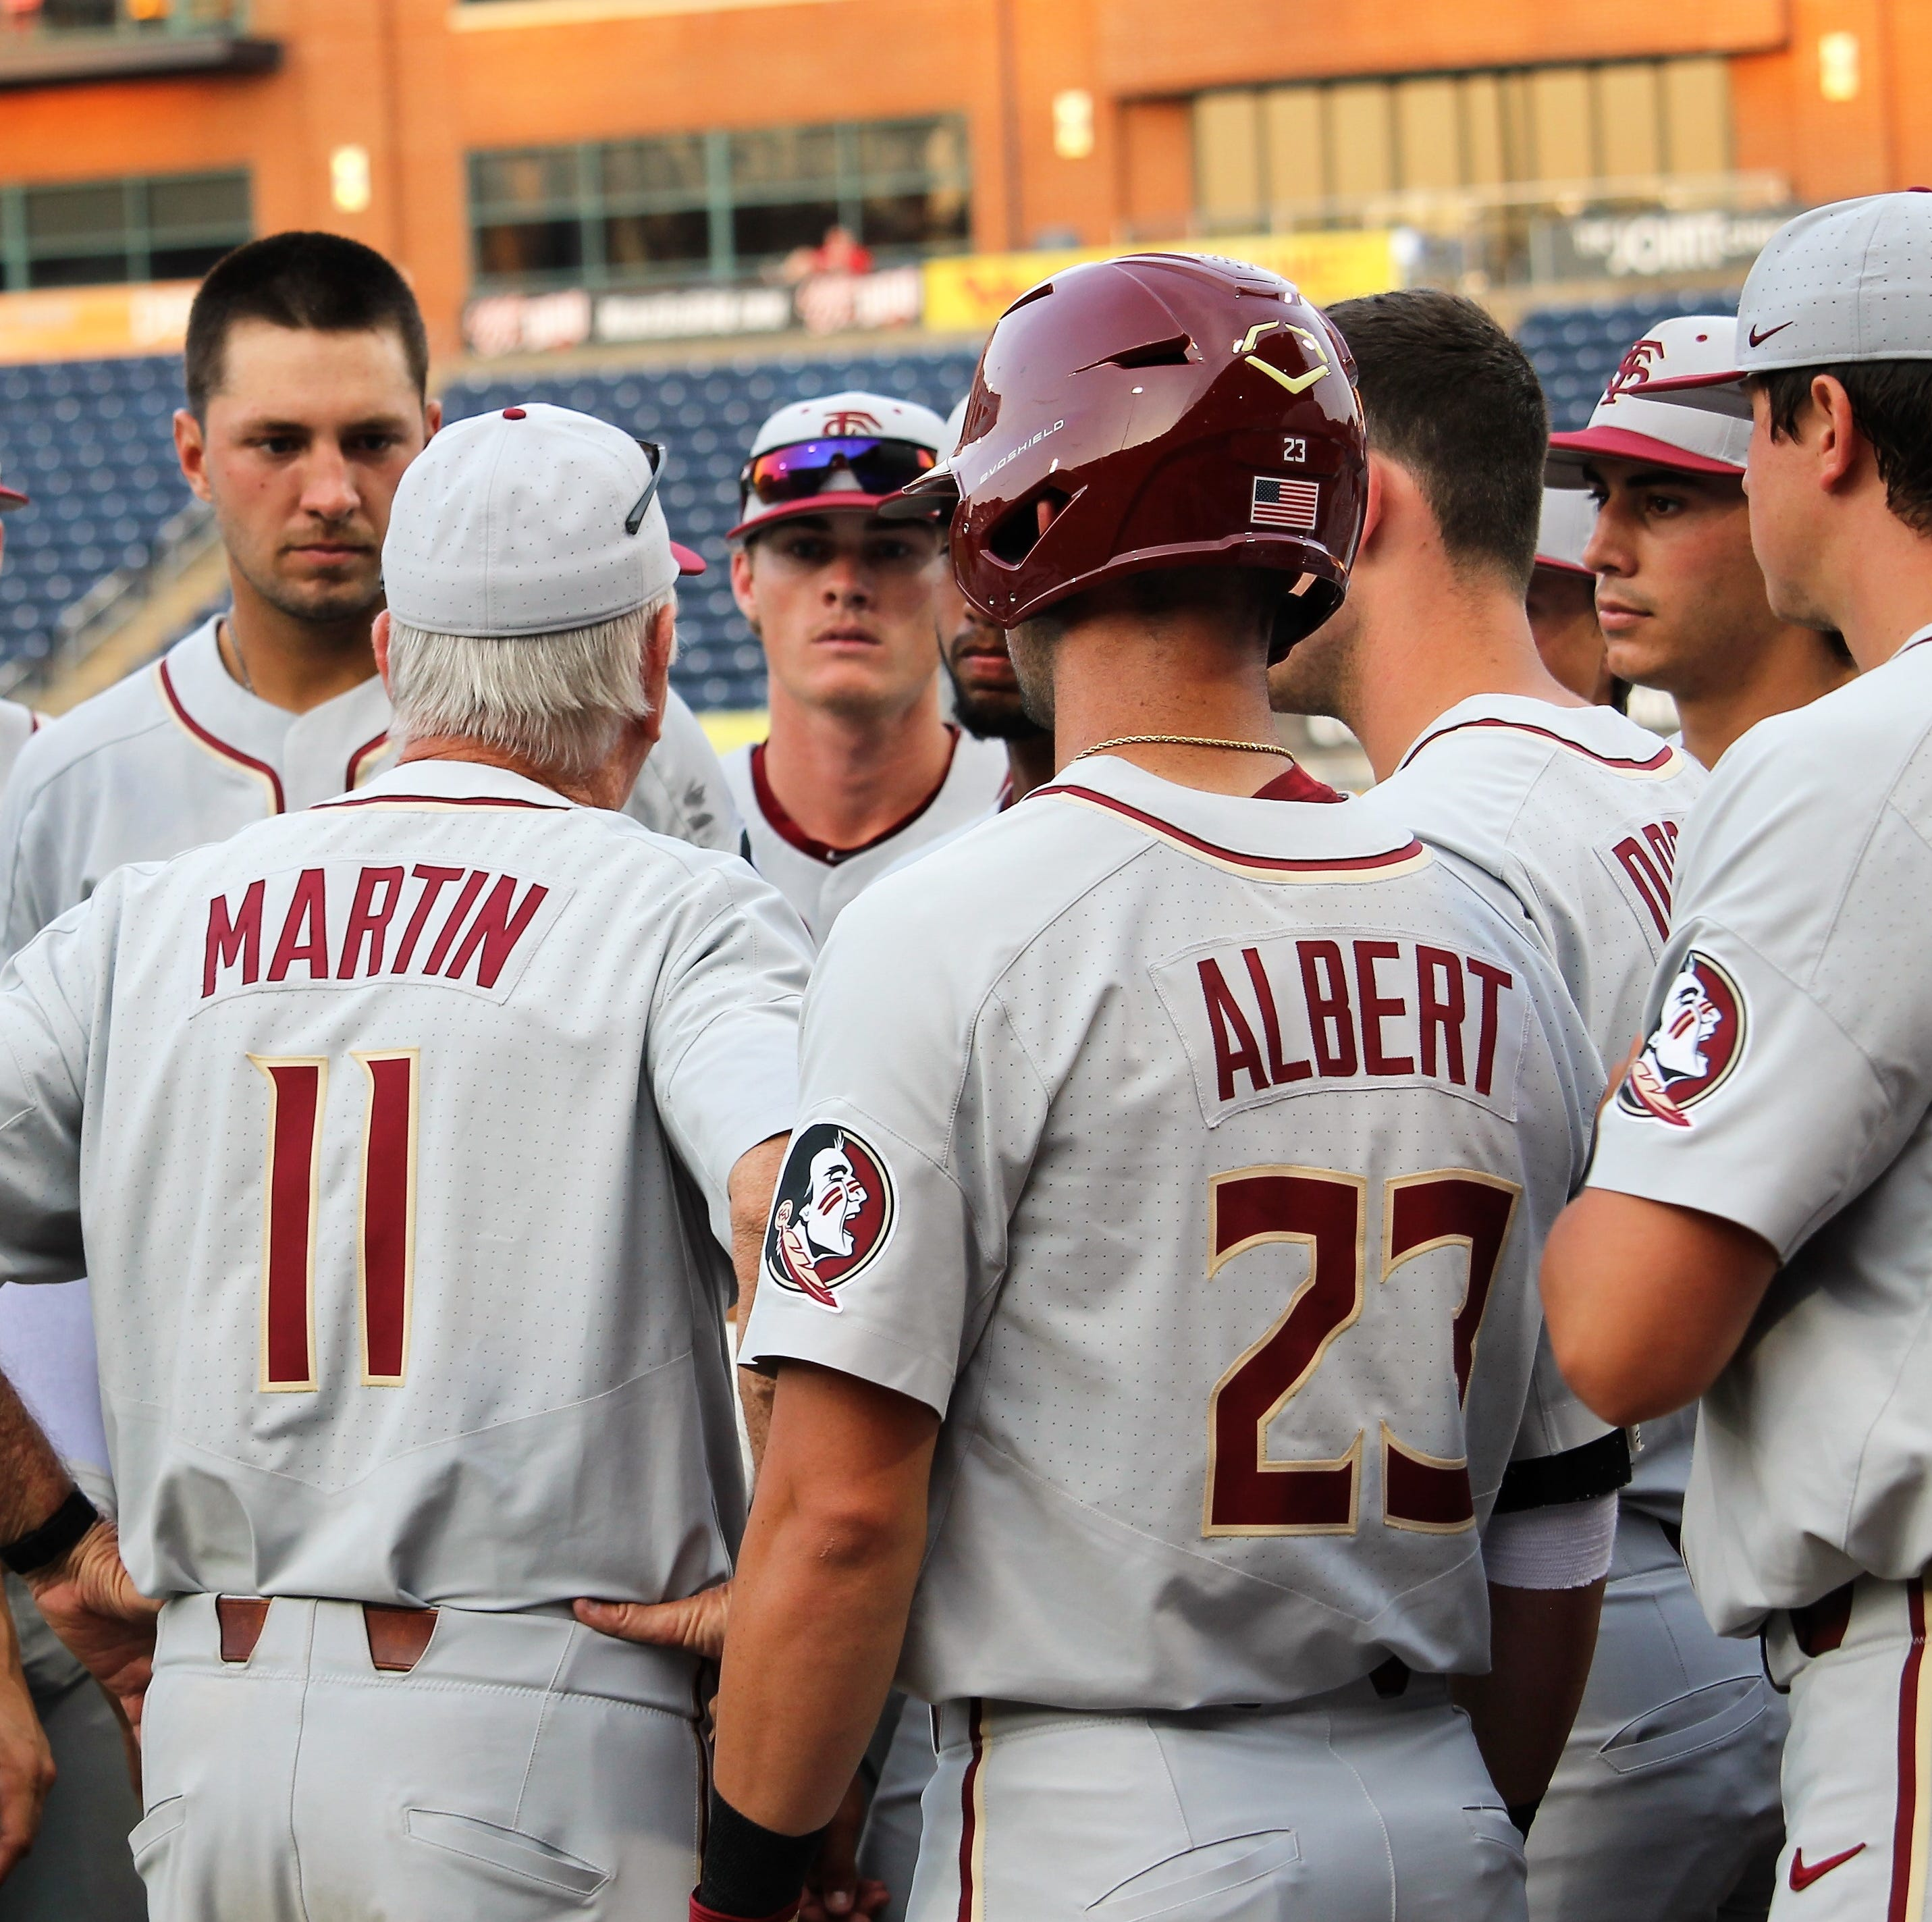 Florida State thrashes No. 14 North Carolina State for run rule victory in ACC Tournament